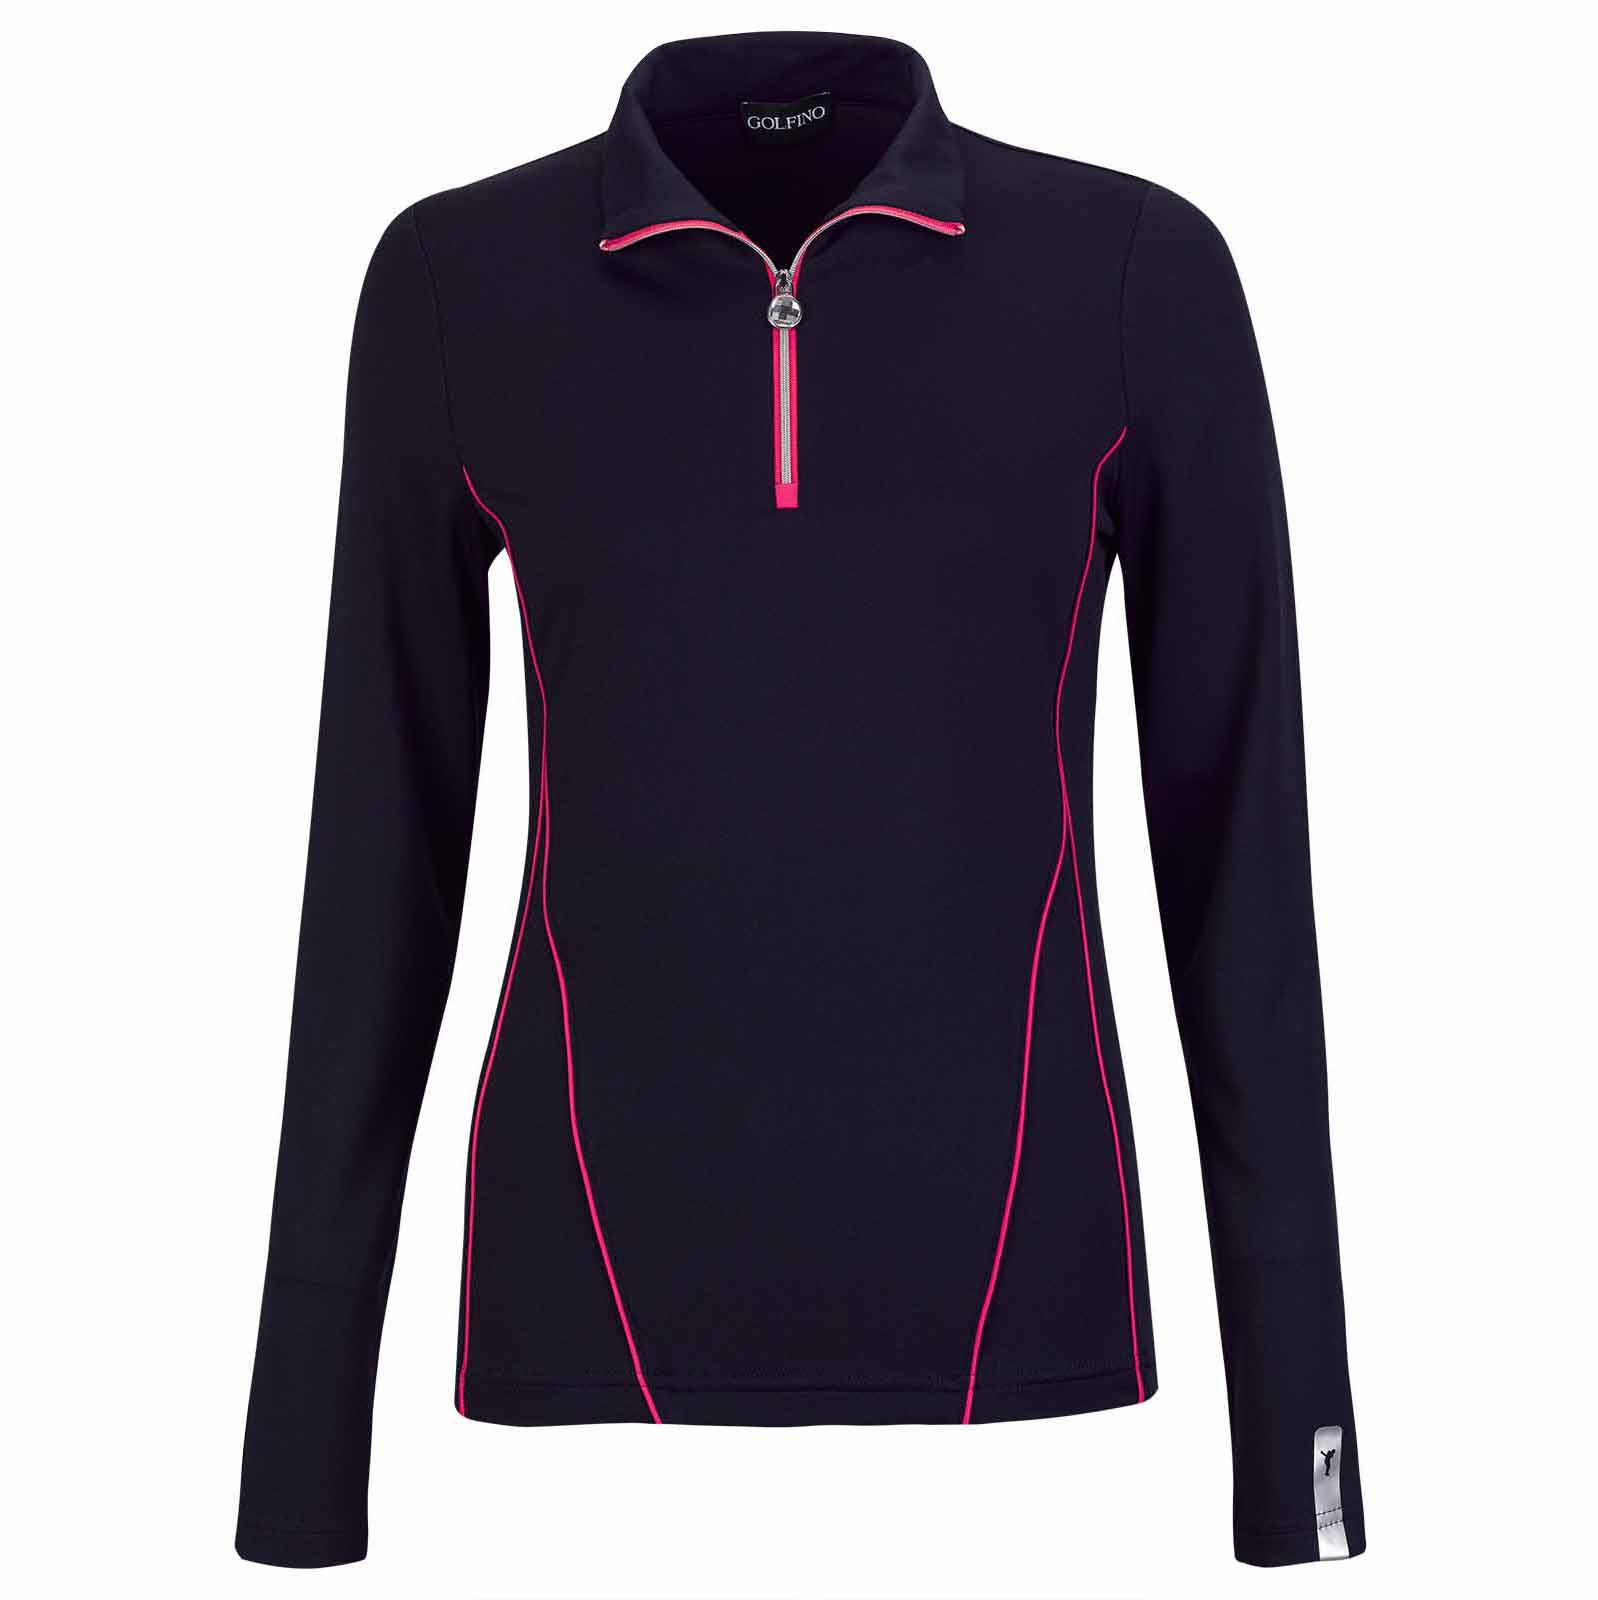 Ladies' elastic long-sleeve golf troyer with Moisture Management